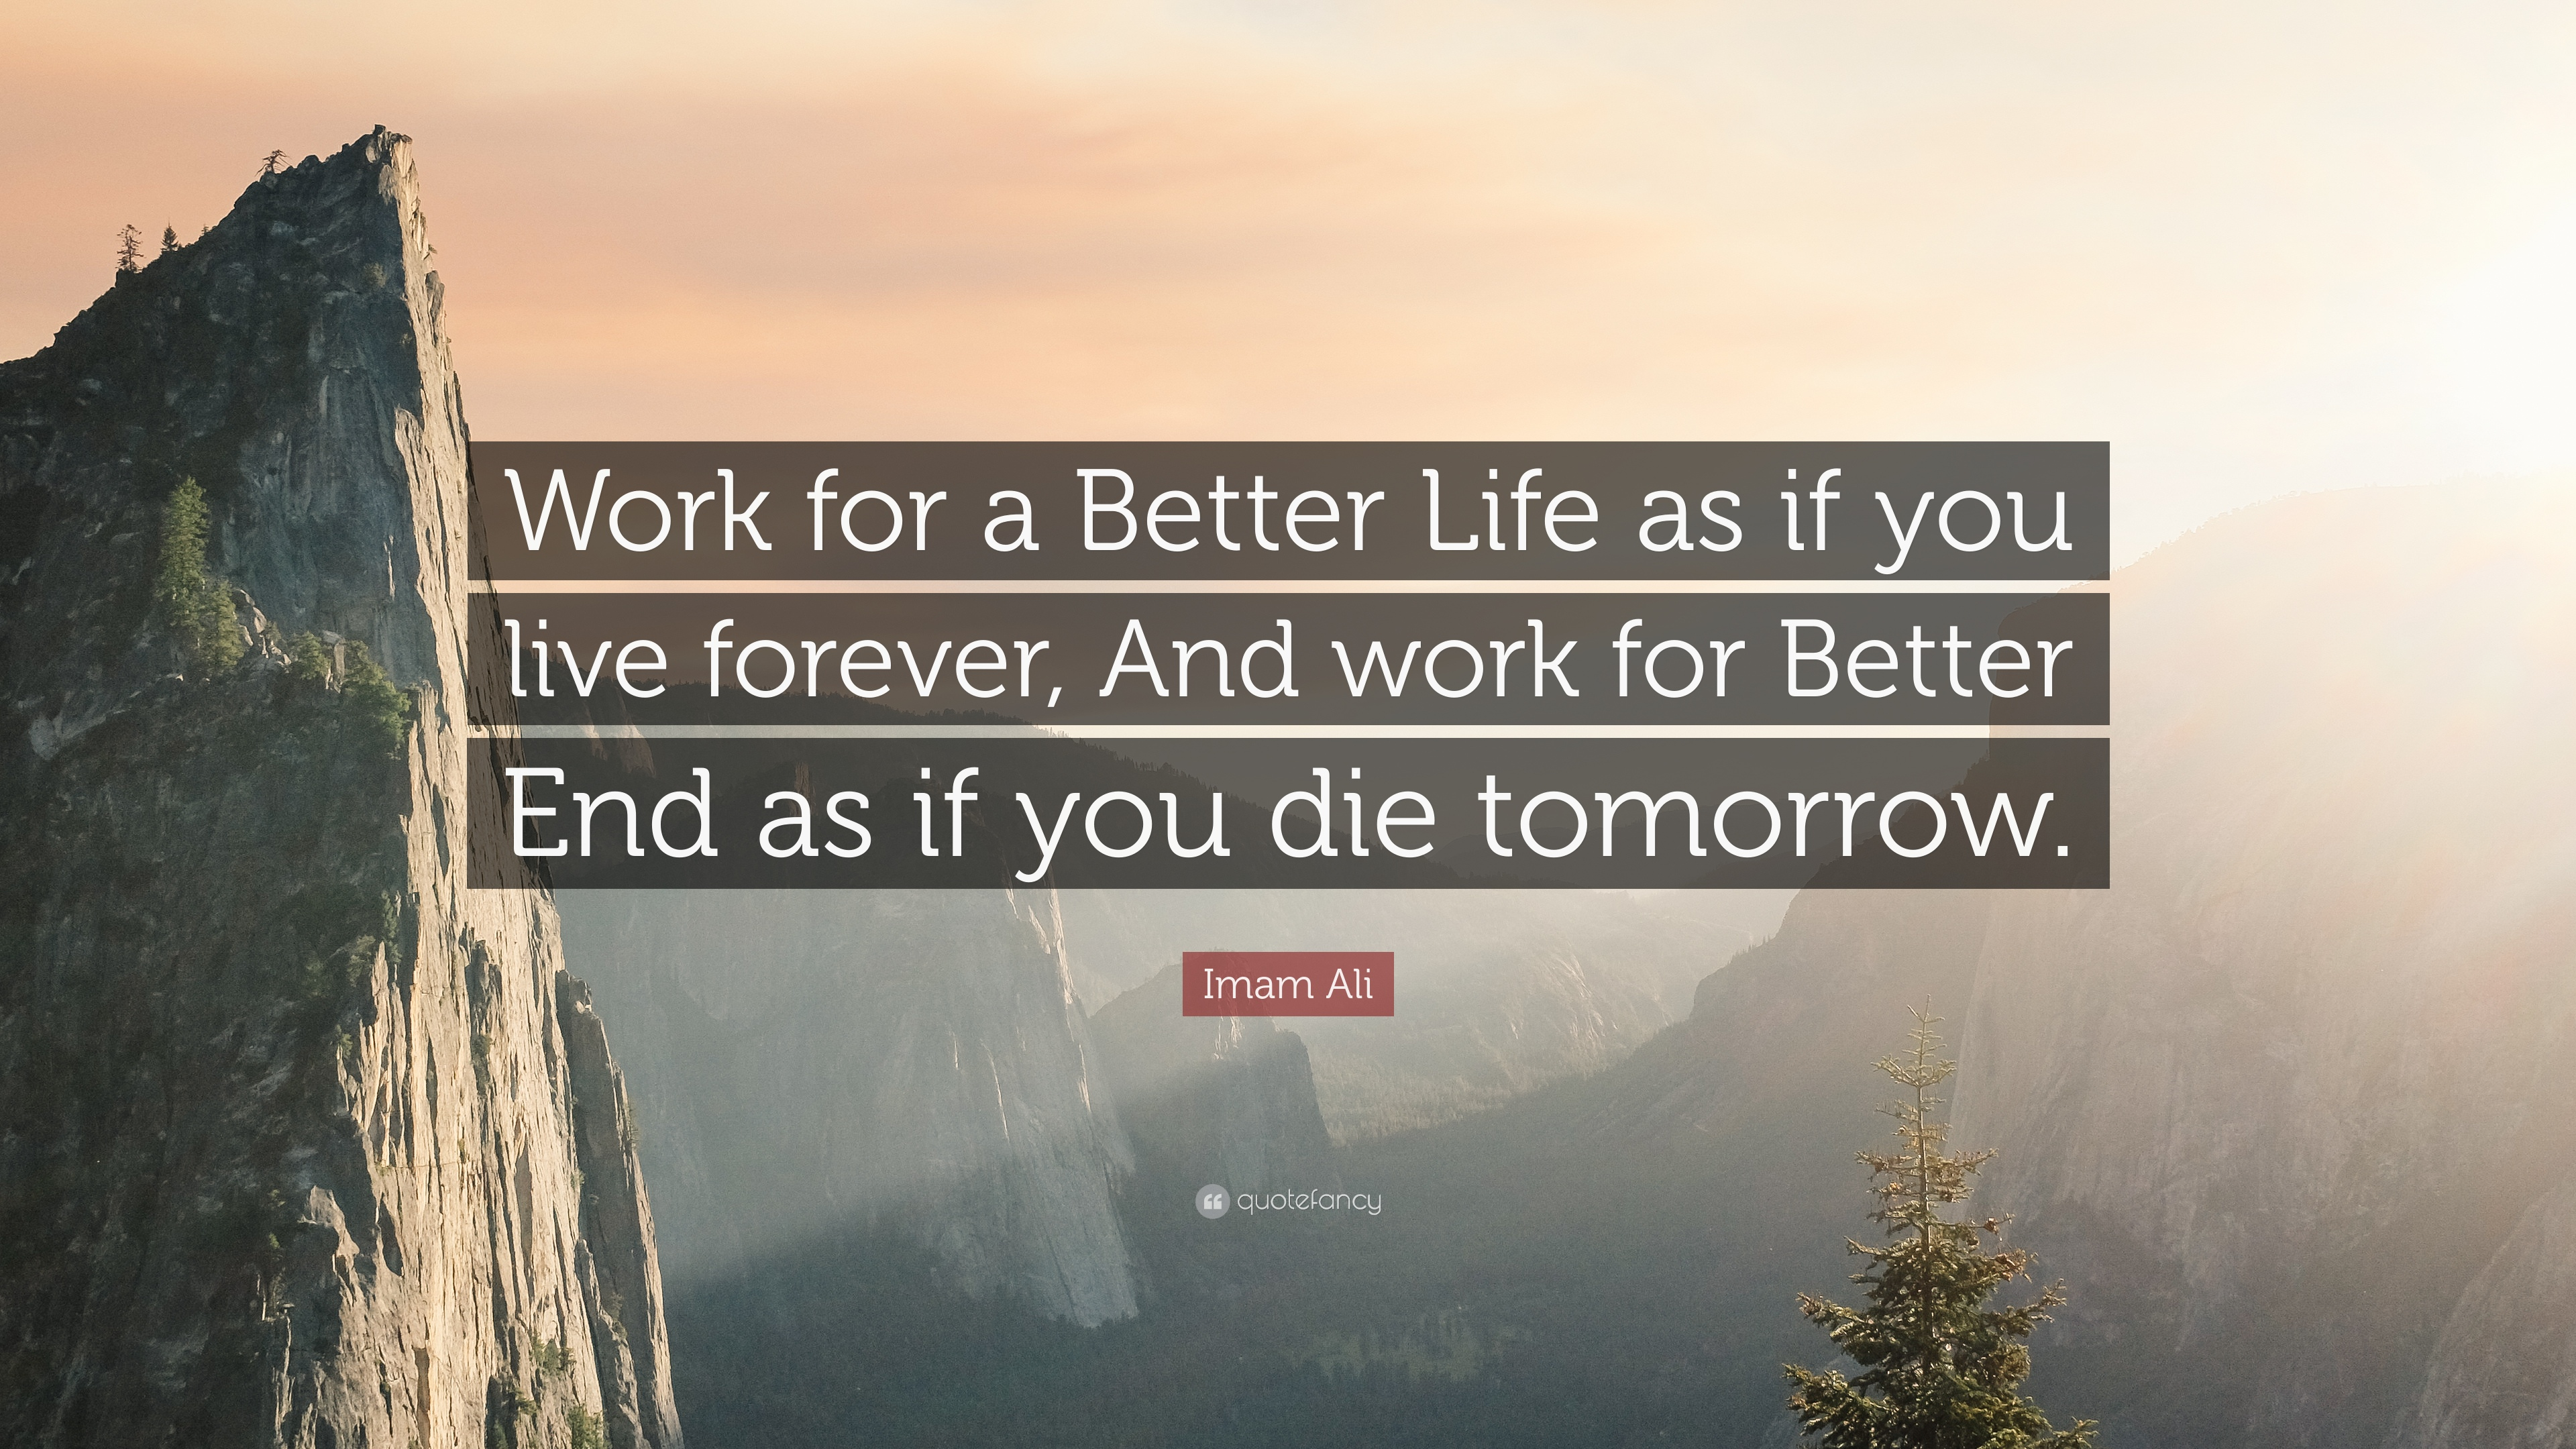 """Work for a Better Life as if you live forever, and work for a Better End as if you die tomorrow"" – Imam Ali (3840X2160)"